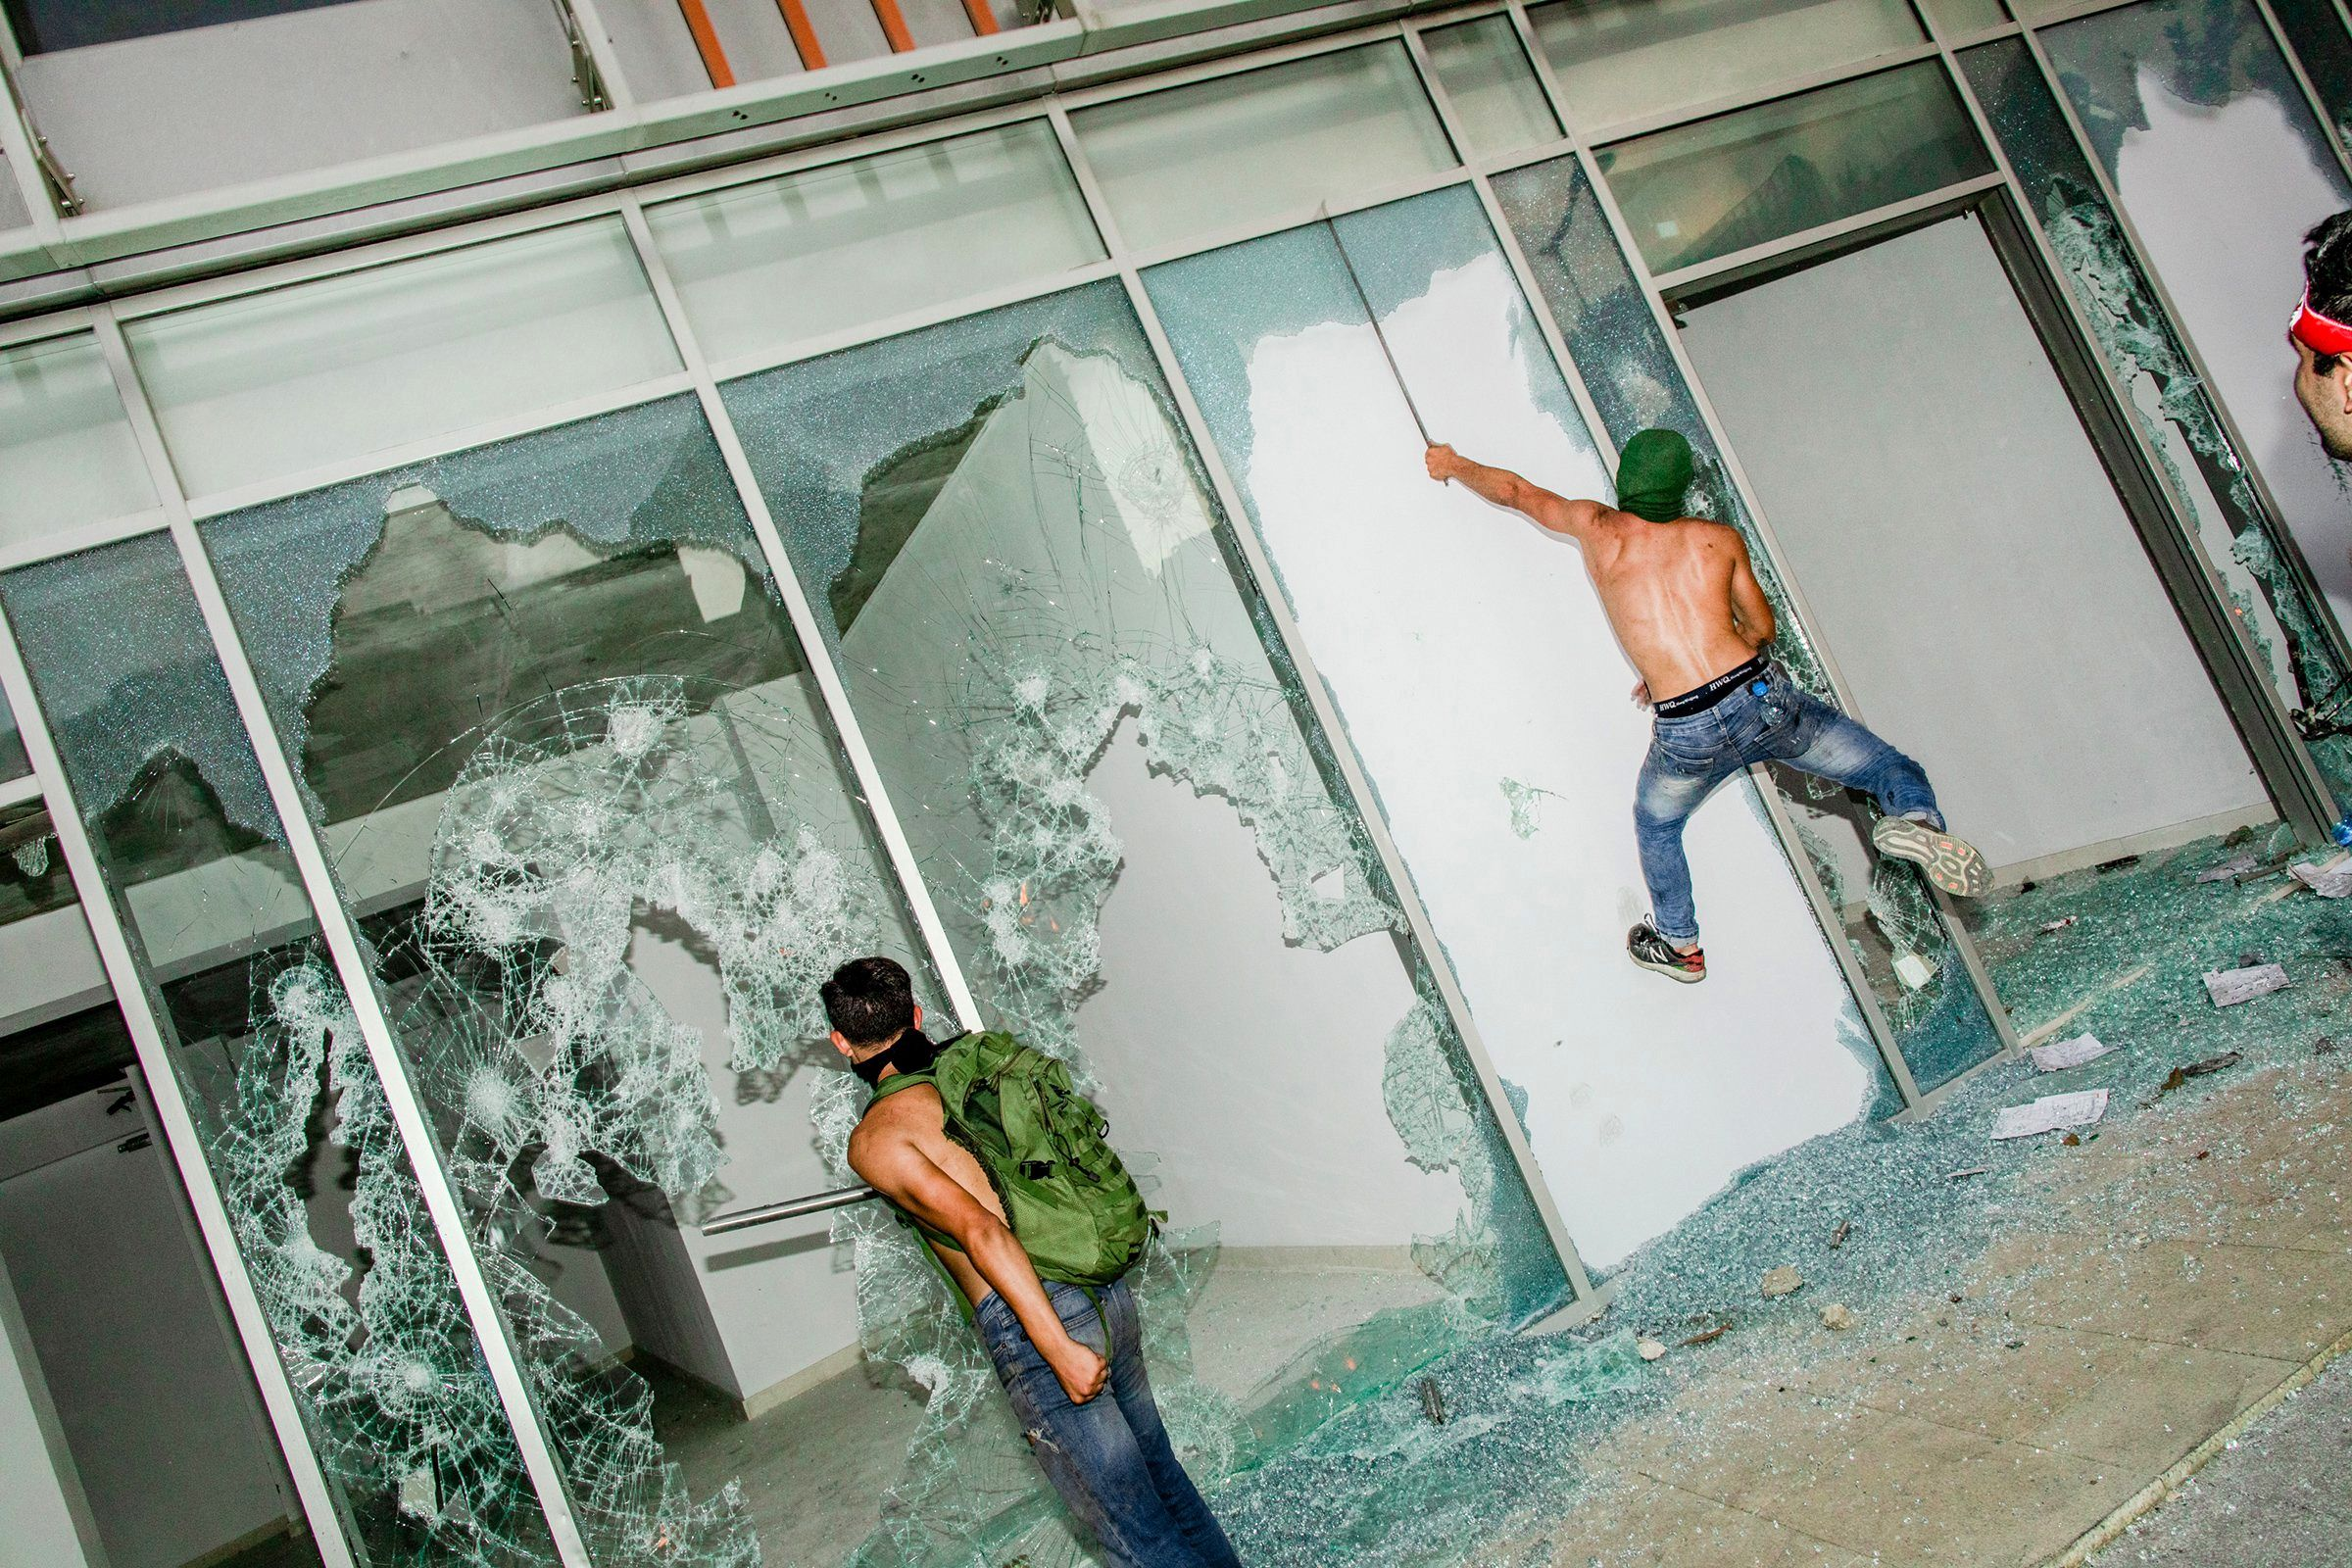 Young men smash shop windows on the first day of protests in Beirut on Oct. 18. After nearly two weeks of anti-government demonstrations aimed at dismantling the country's political system, Lebanese Prime Minister Saad Hariri resigned.